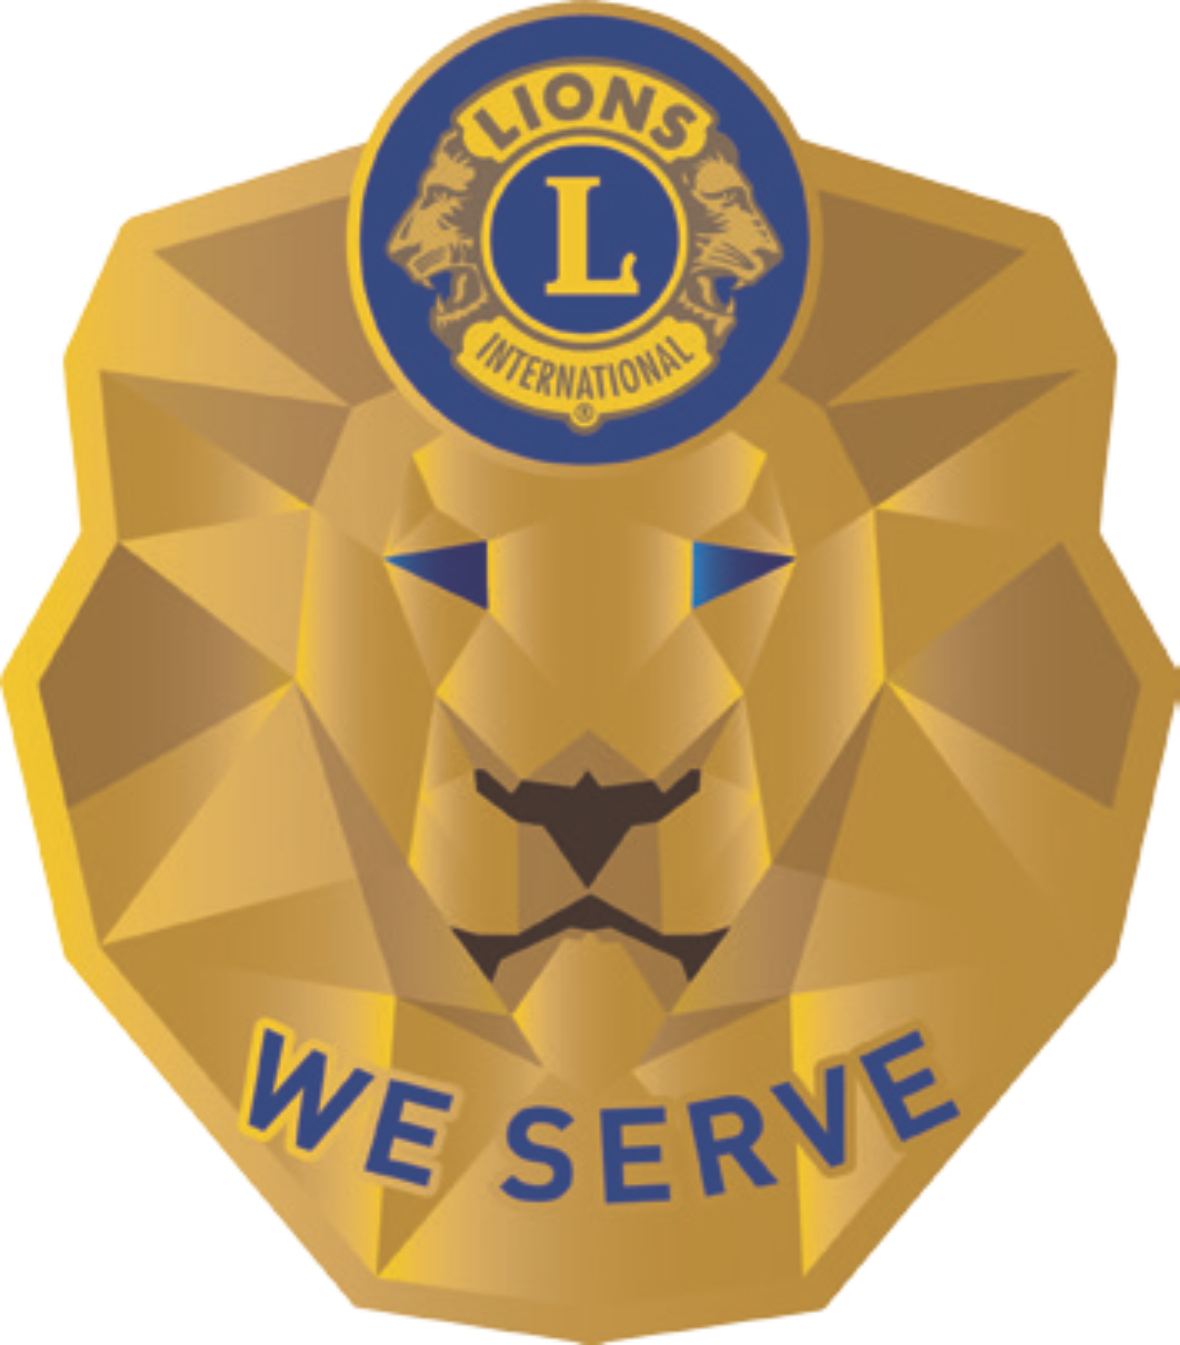 International Logo - Lions Club